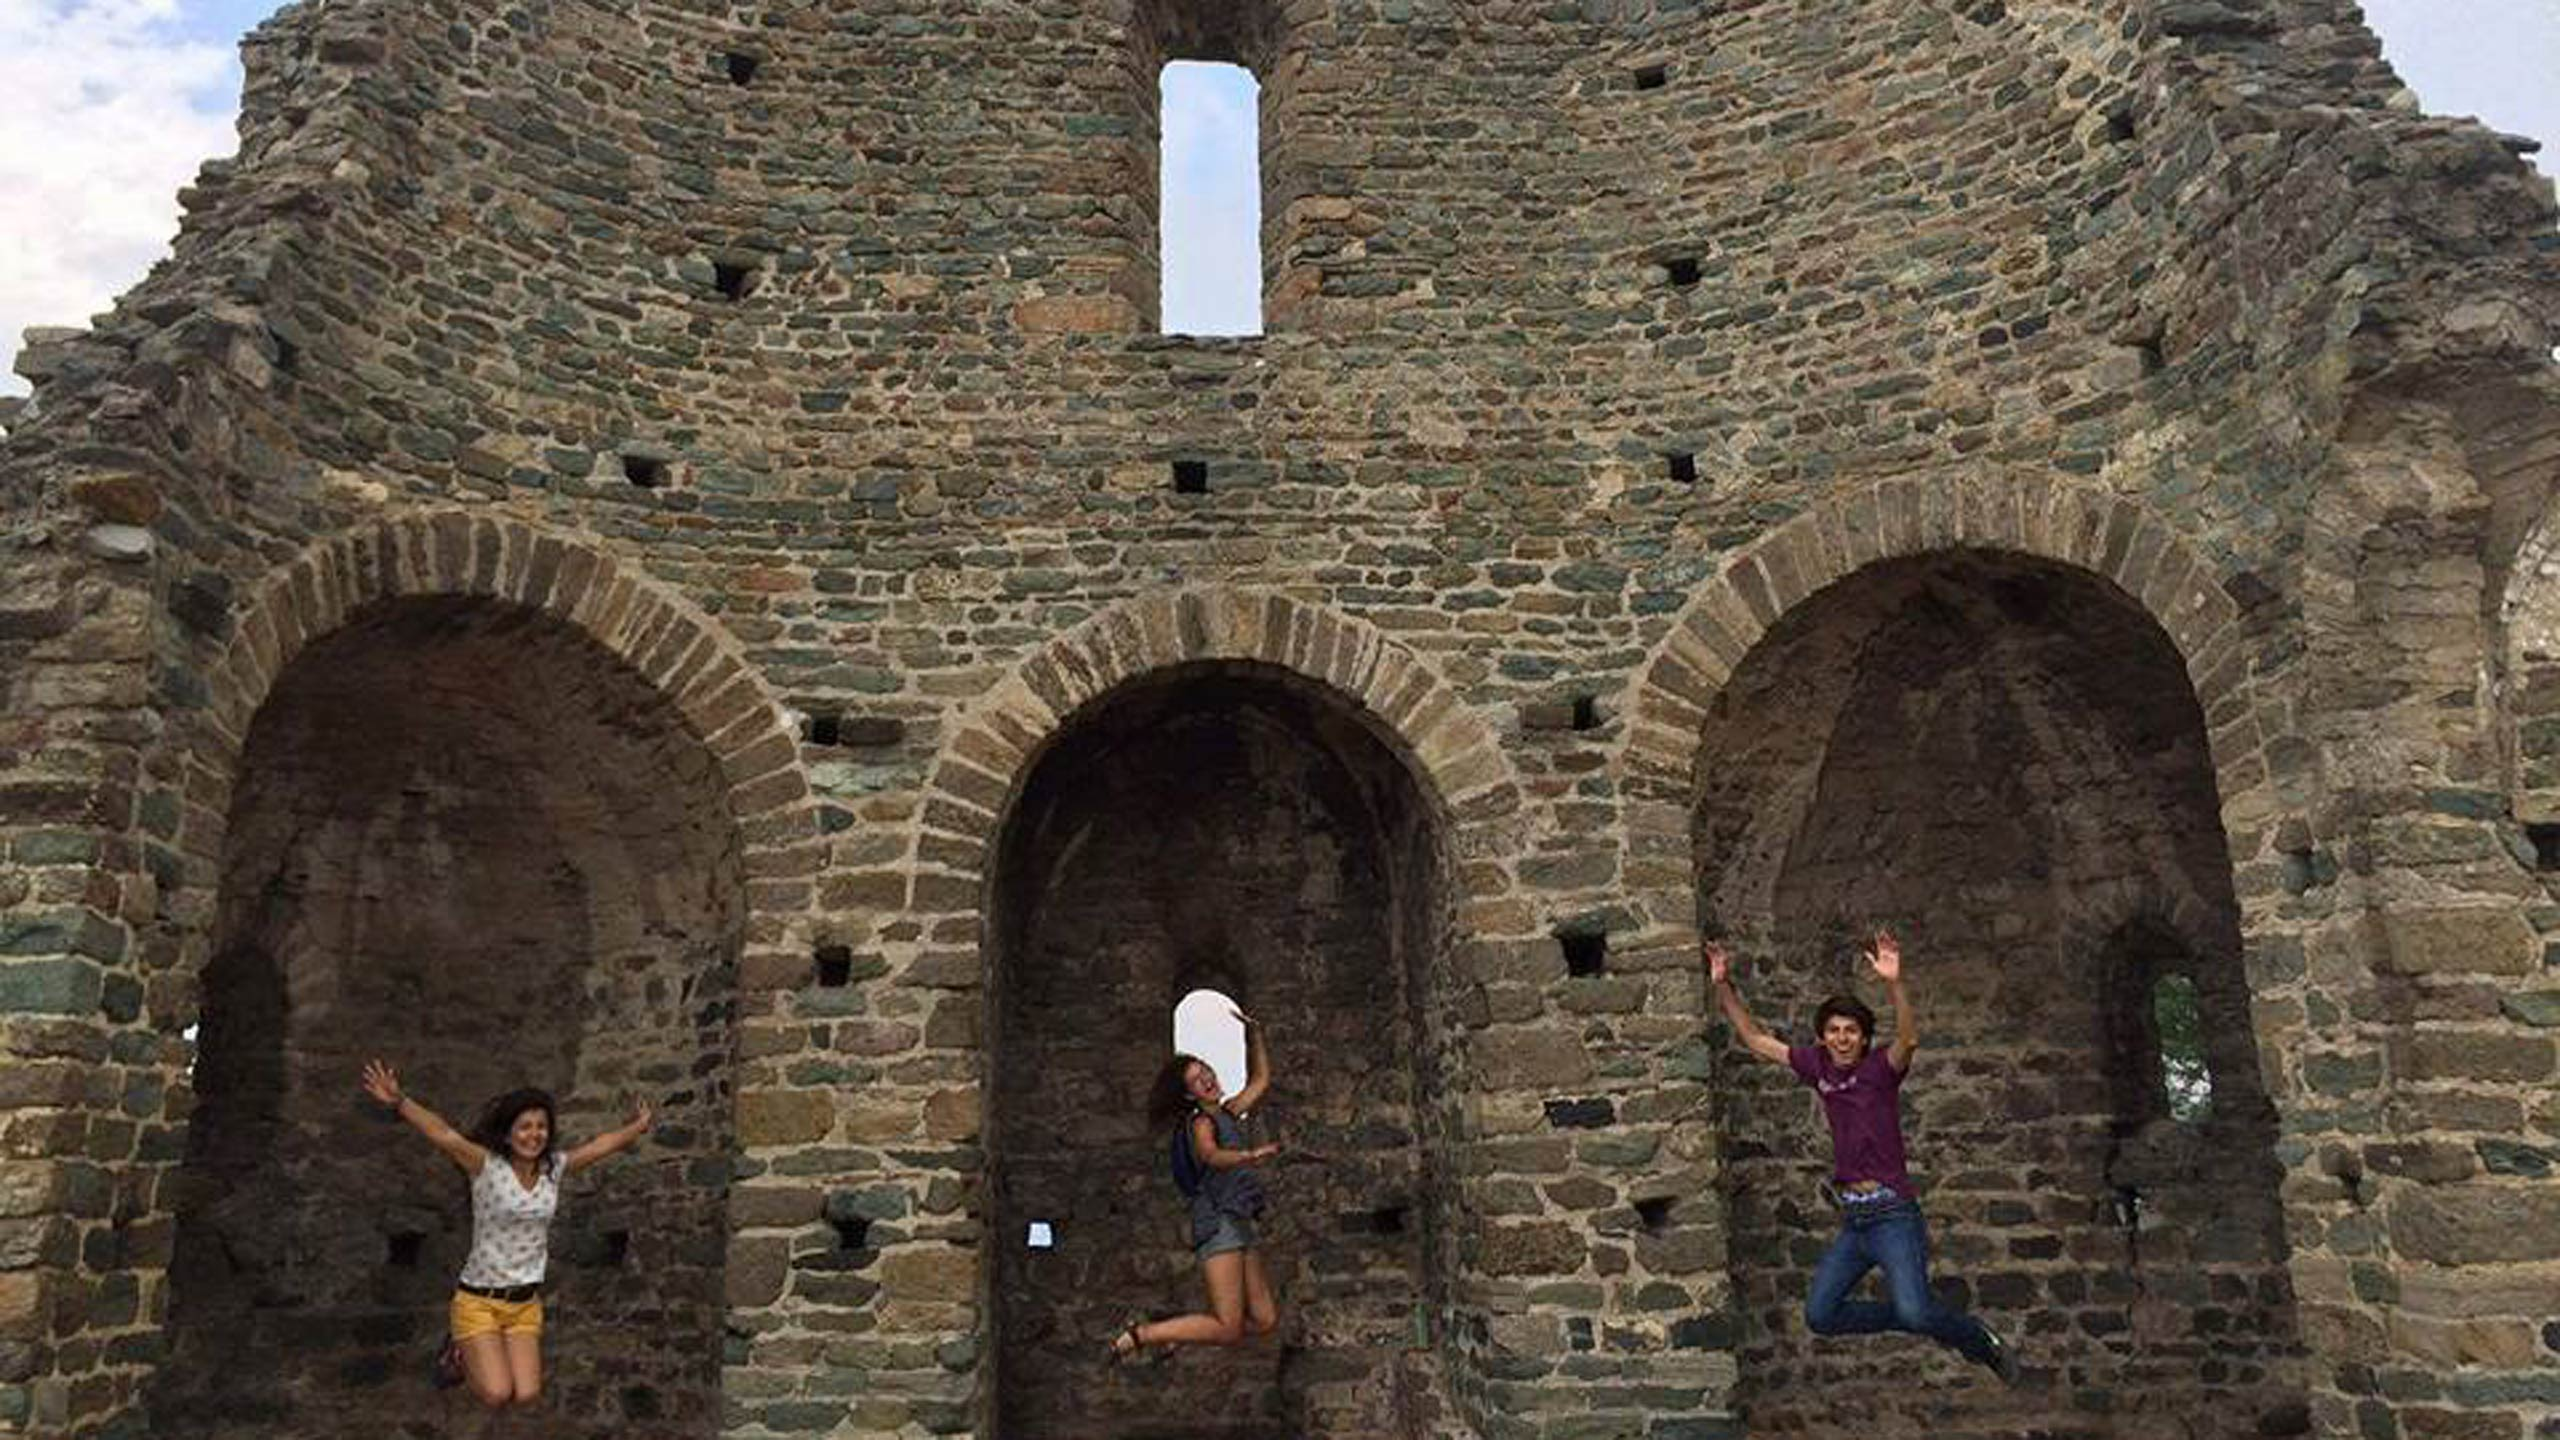 Three people jumping in the air in front of an old stone building